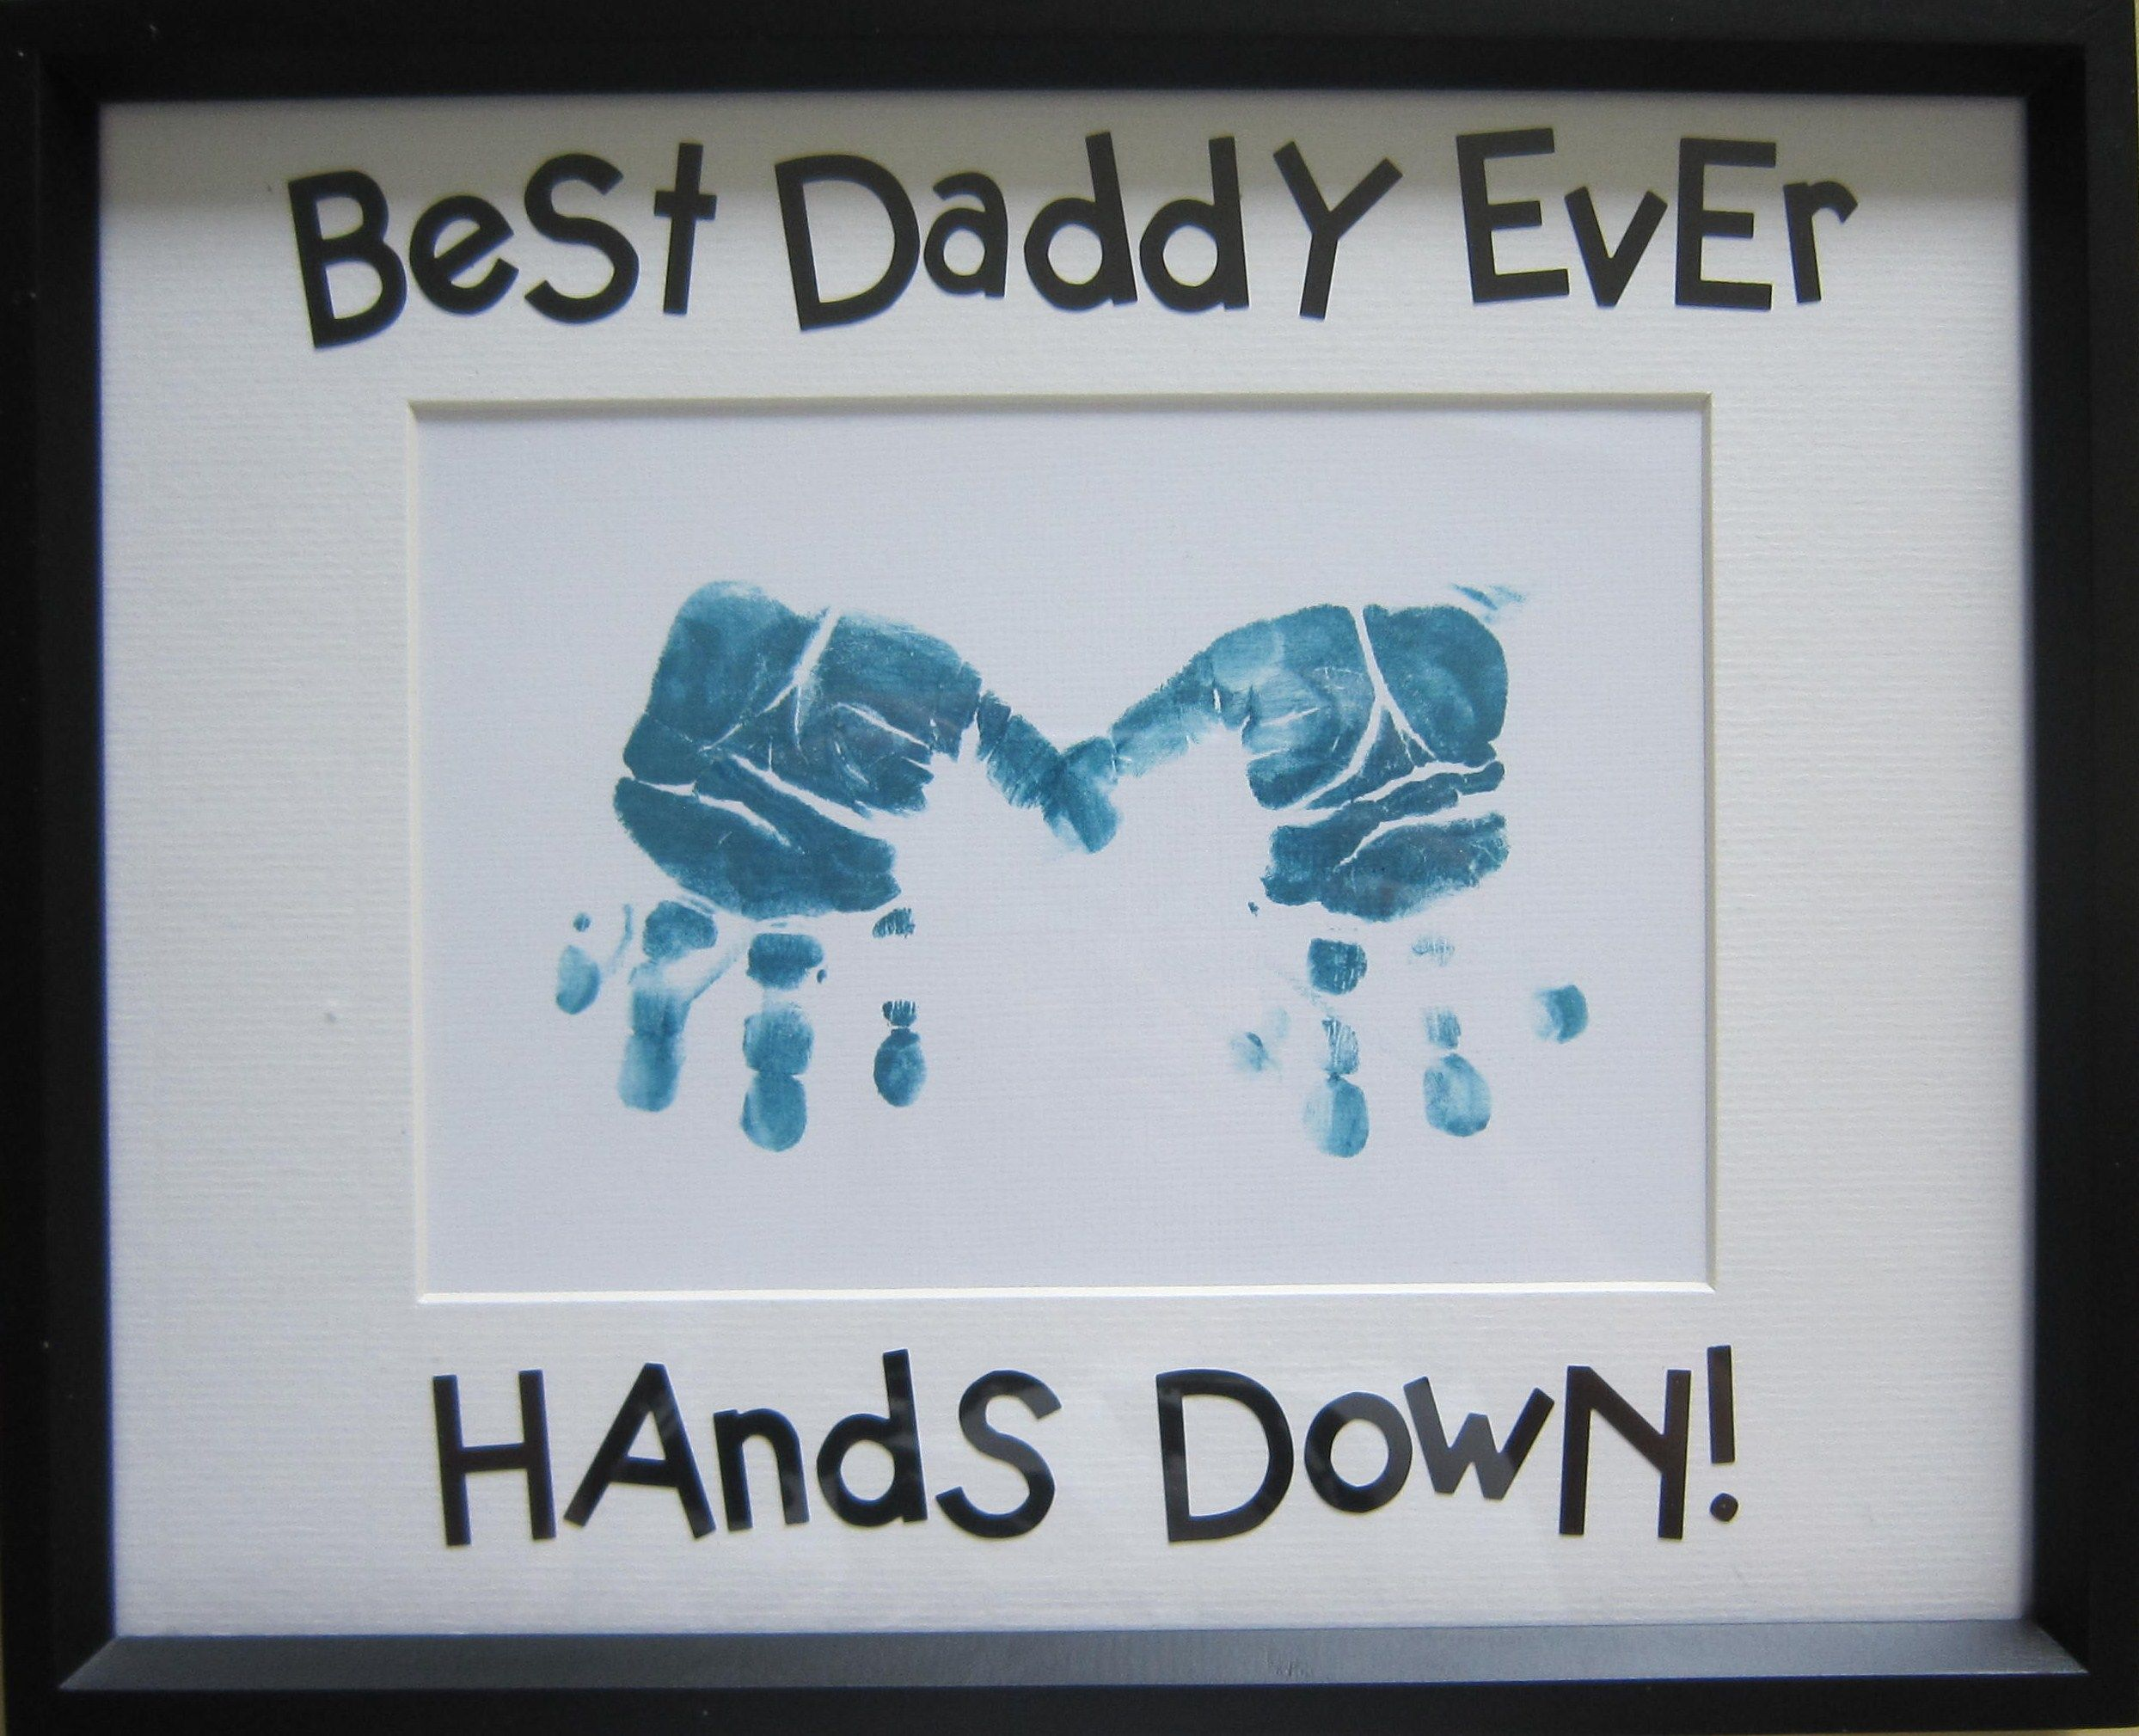 Fathers day gift ideas part 2 easy fathers day gifts